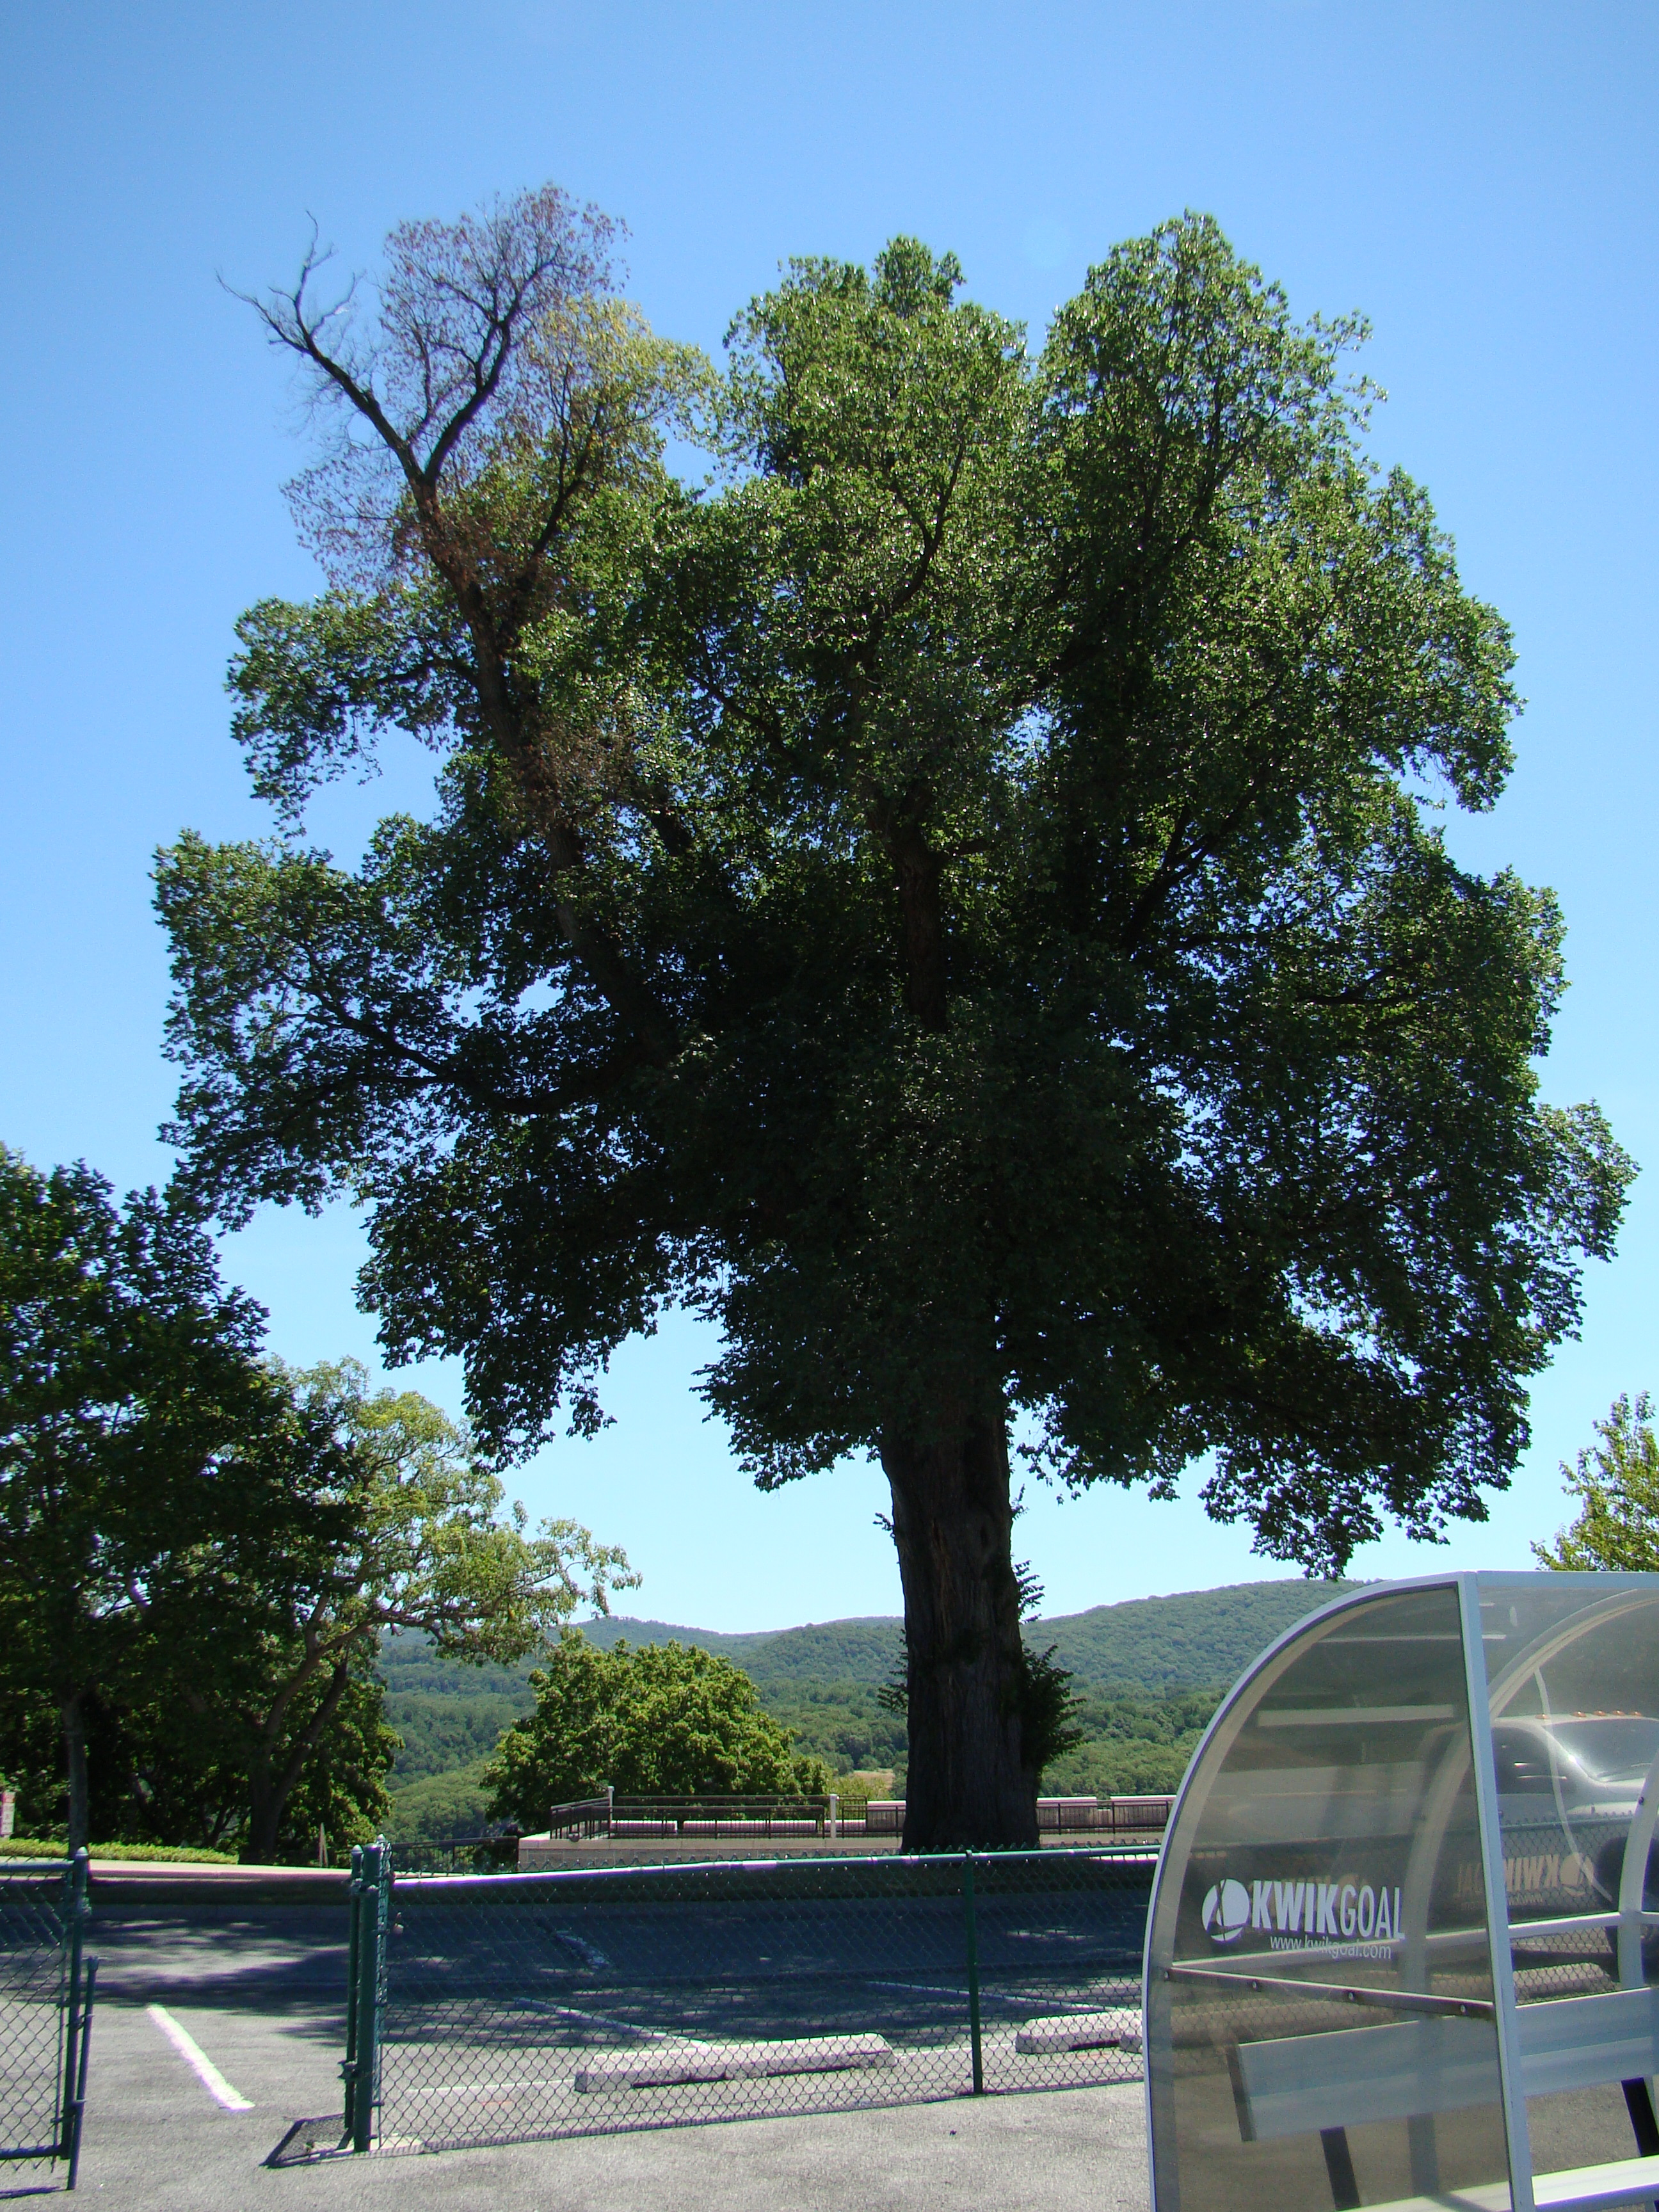 elm online dating Druid horoscope druid horoscope: elm the tree elm is big, harmonious, and beautiful elm people are rather attractive for others, but they have something constraining nonetheless, people.